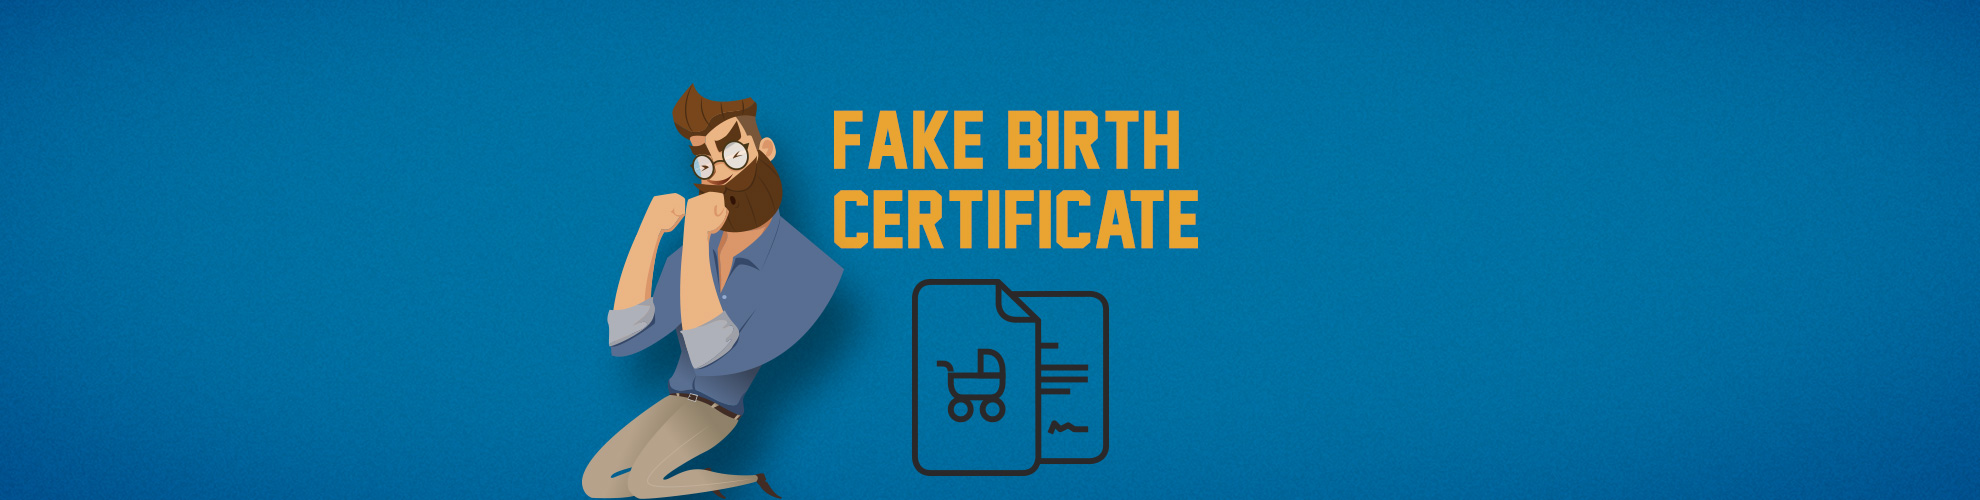 Fake Birth Certificate